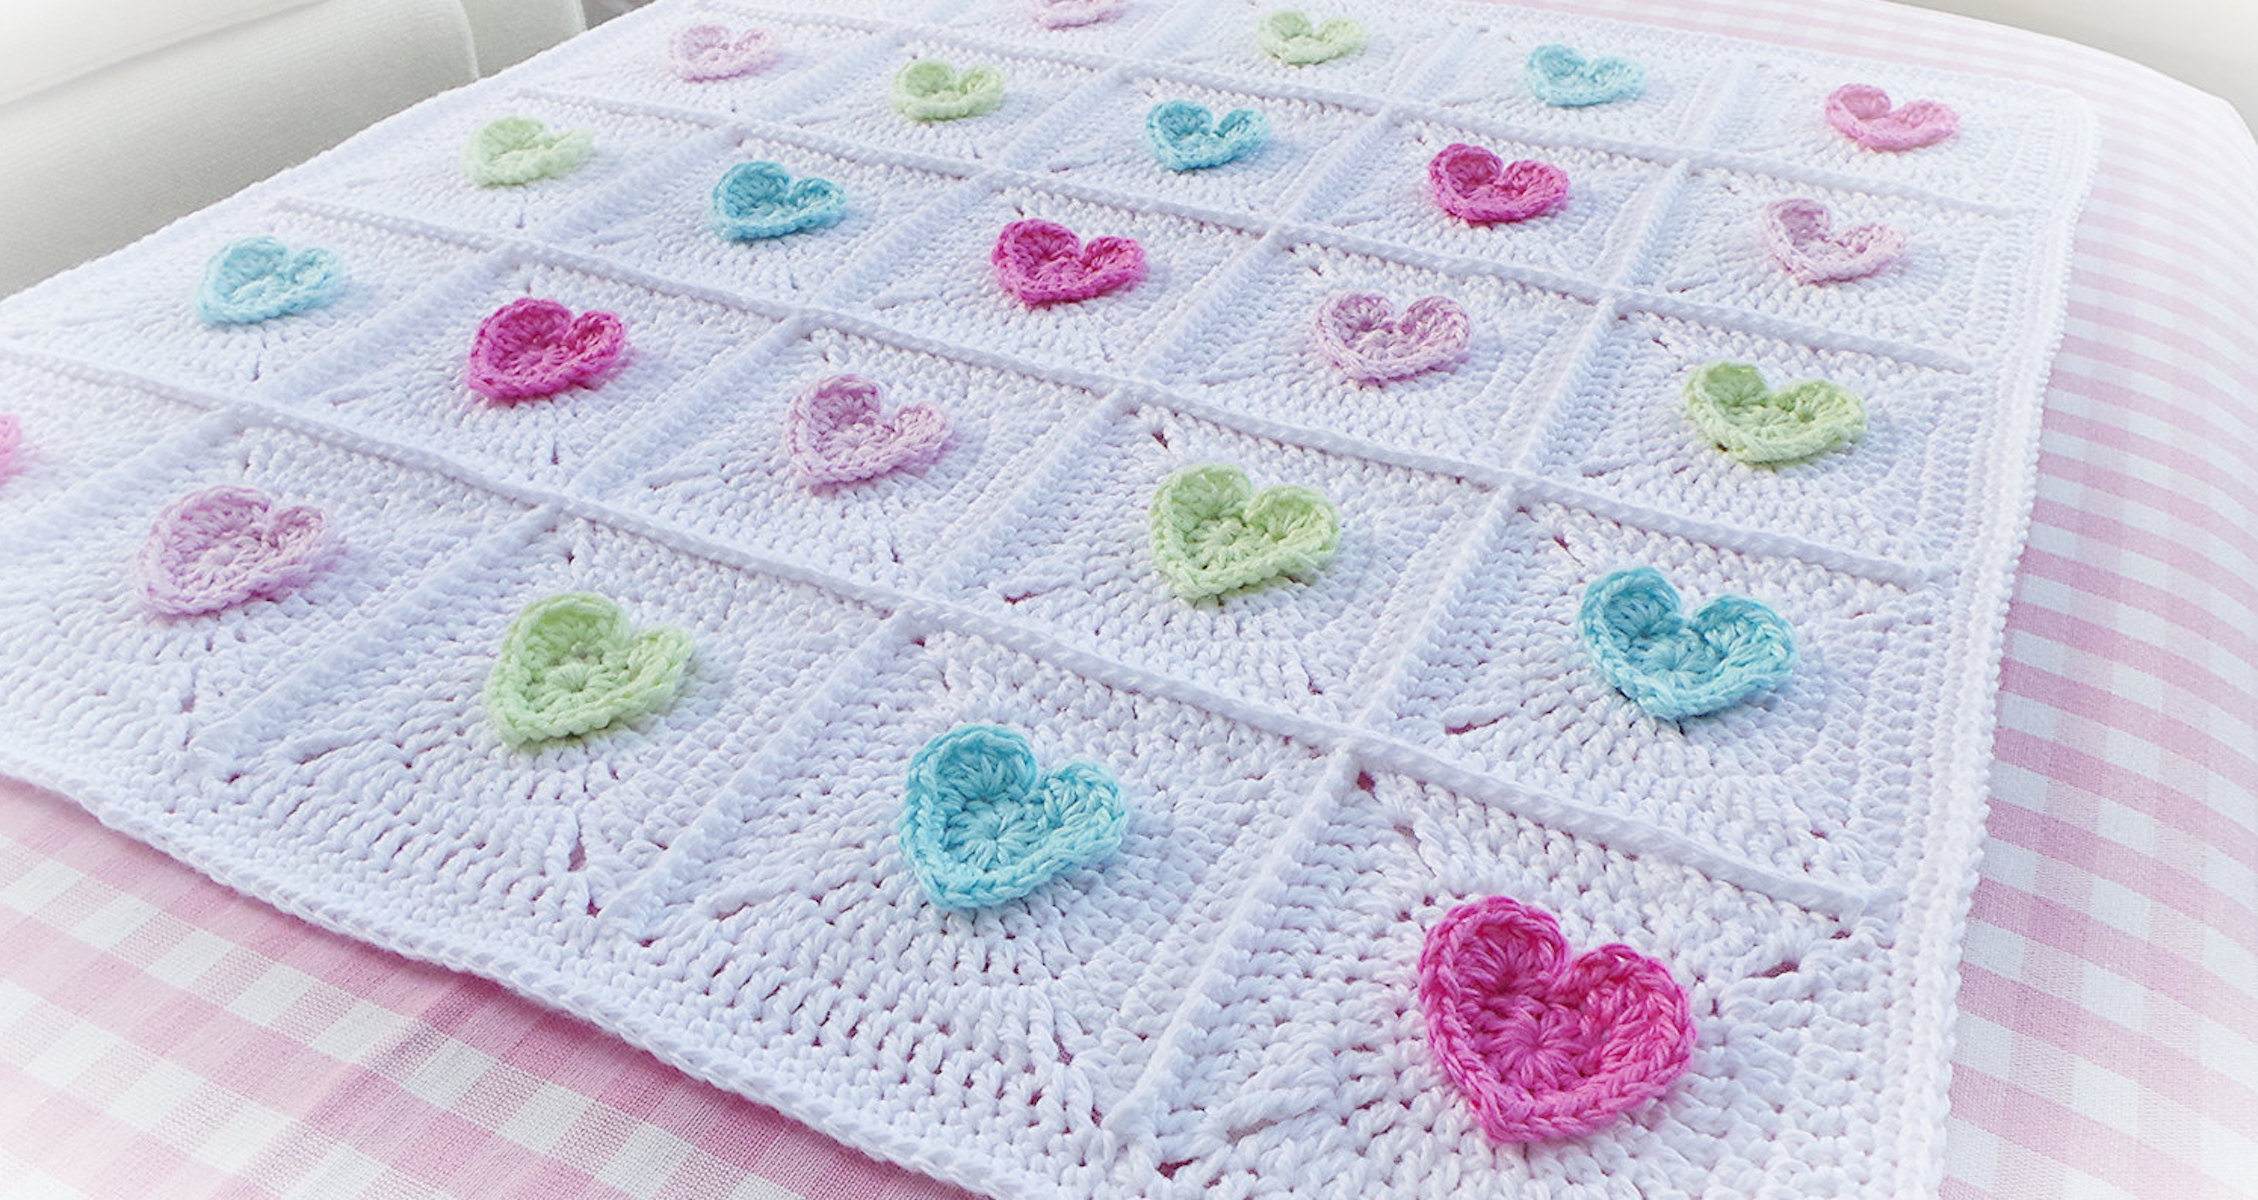 Knitted Granny Square Patterns : orgu Battaniye Modelleri orgu Delisiyim